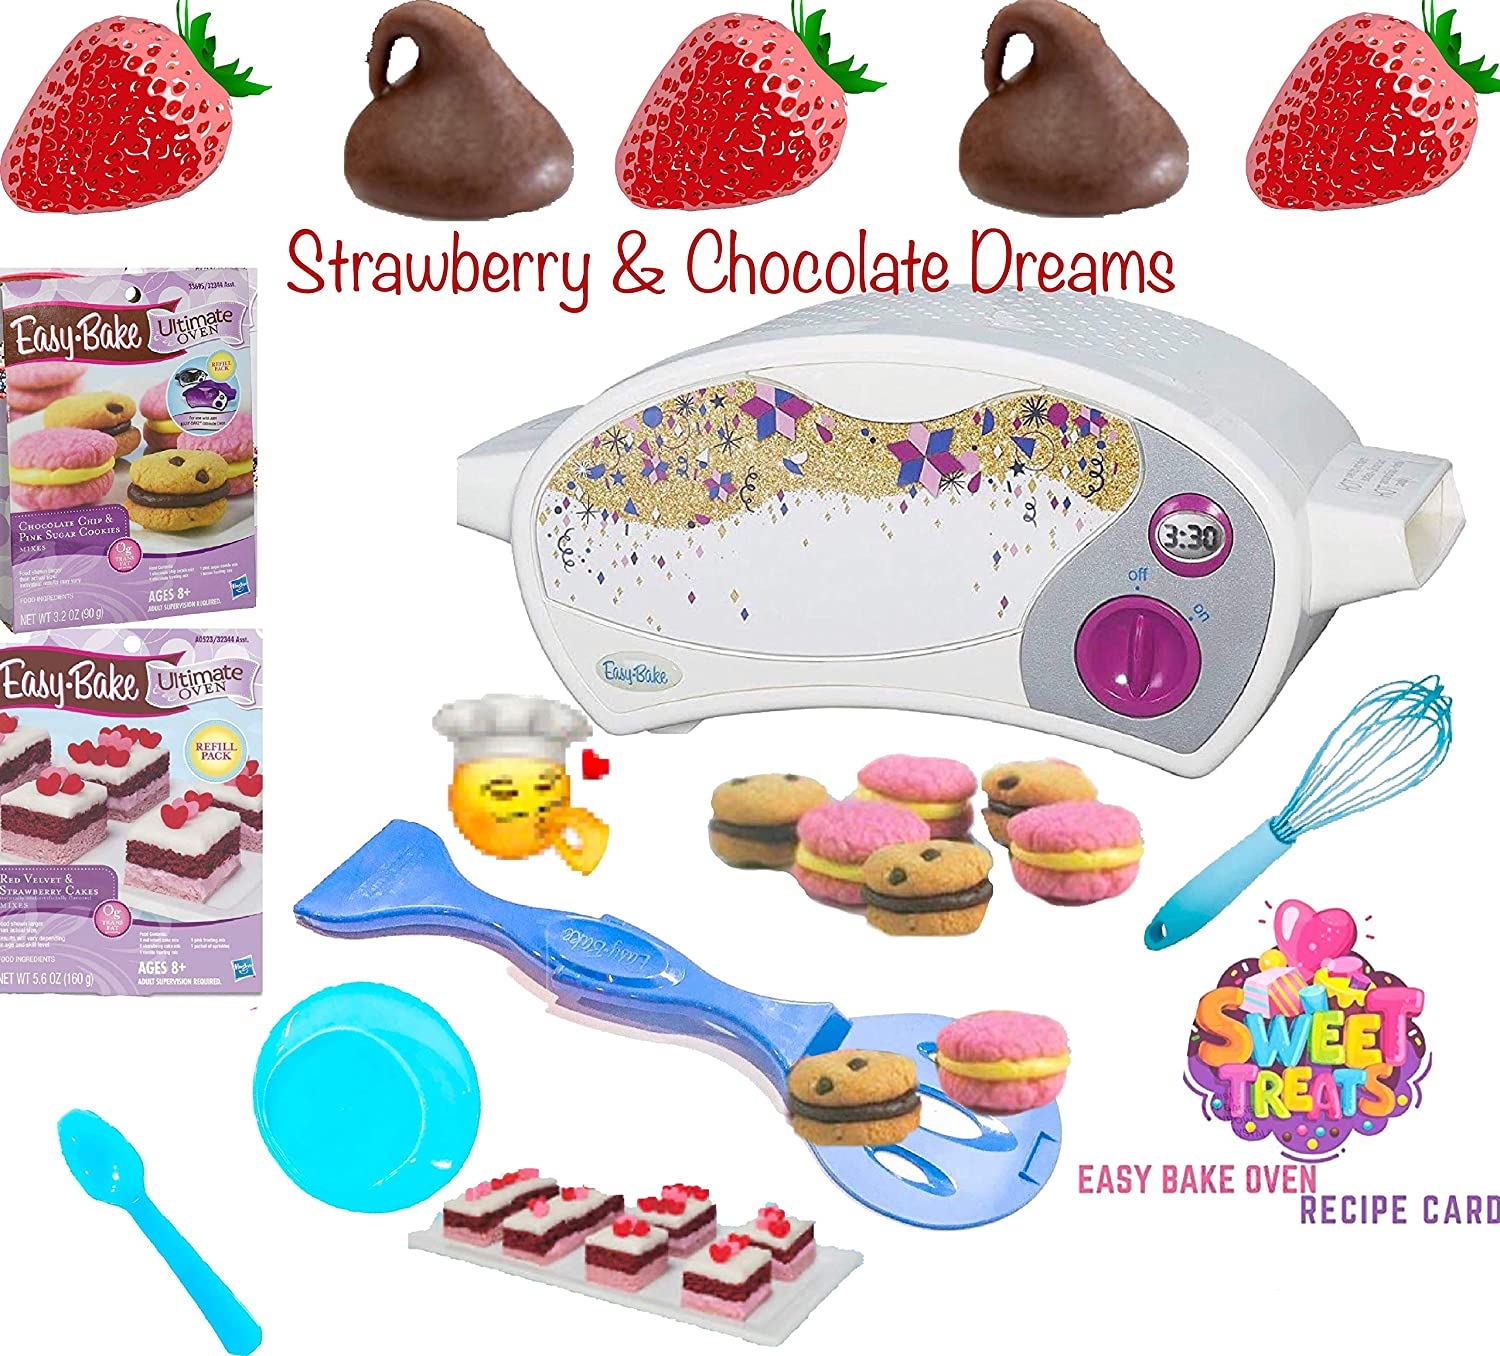 Party Lab 365 Easy Bake Ultimate Oven Baking Star Edition + 2 Oven Refill Mixes + 2 Sweet Treats Tasty Oven Recipes + Mixing Bowl, Spoon and Extra Baking Accessories (7 Total Items) (Blue)